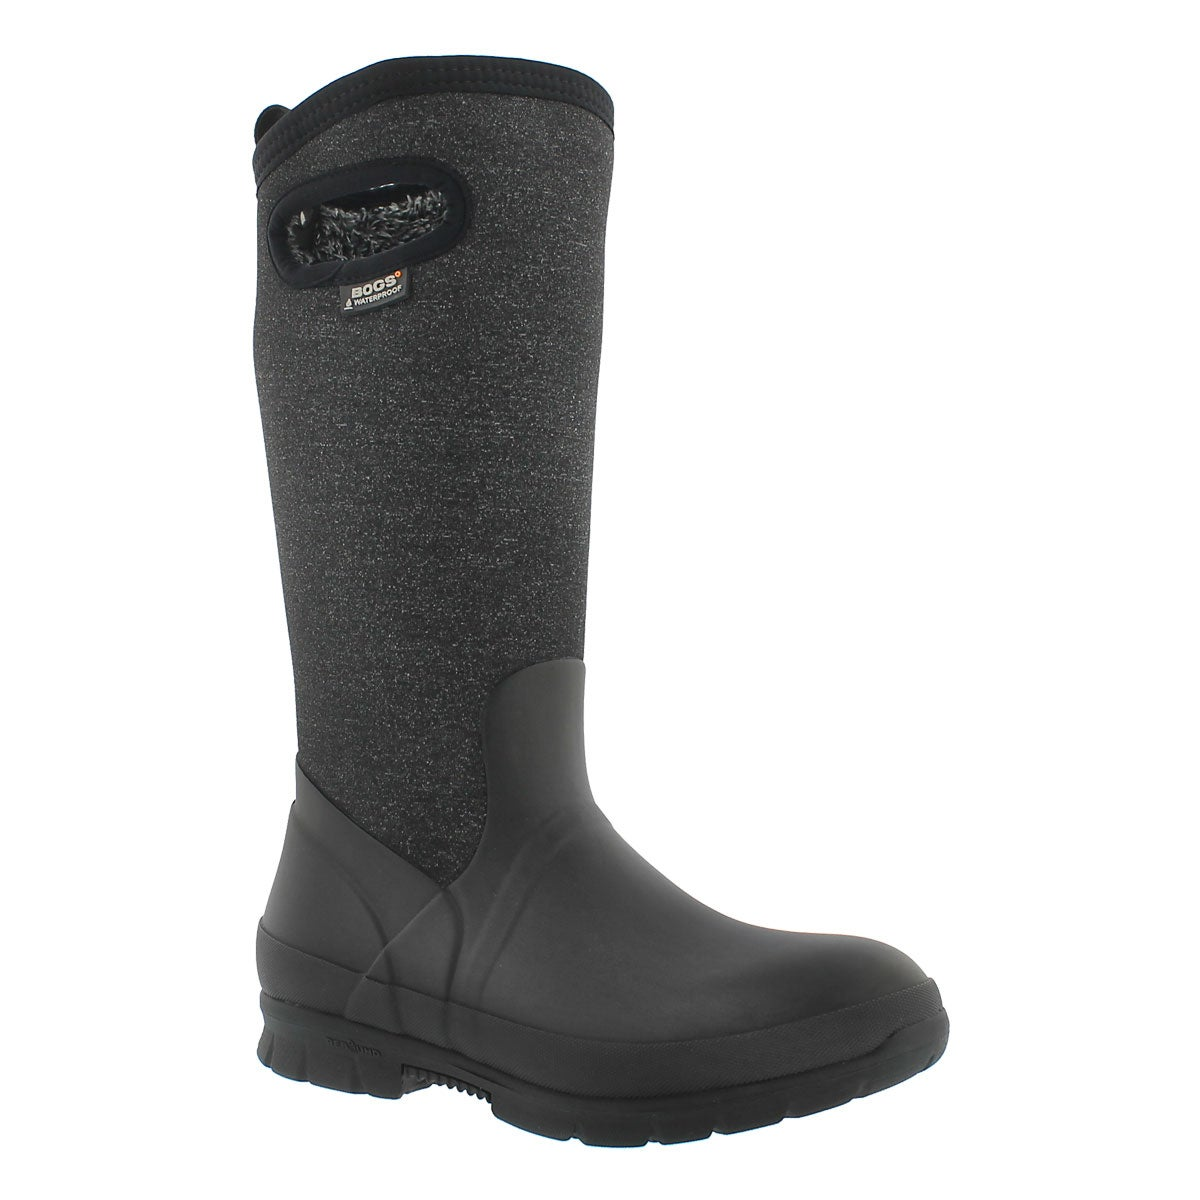 Lds Crandal Tall blk multi wtpf boot